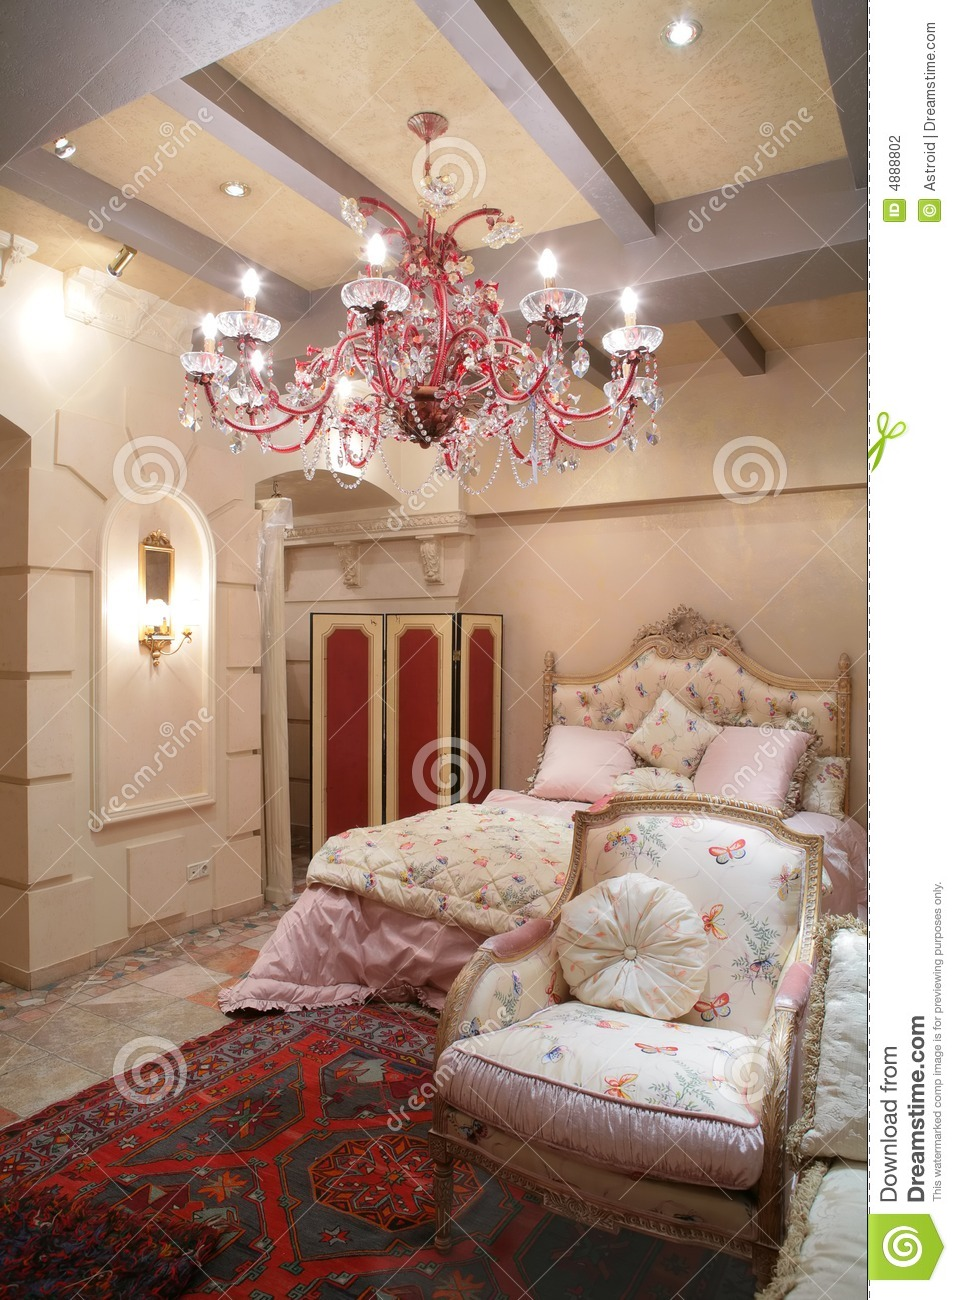 Bedroom in vintage style stock photo Image of coverlet